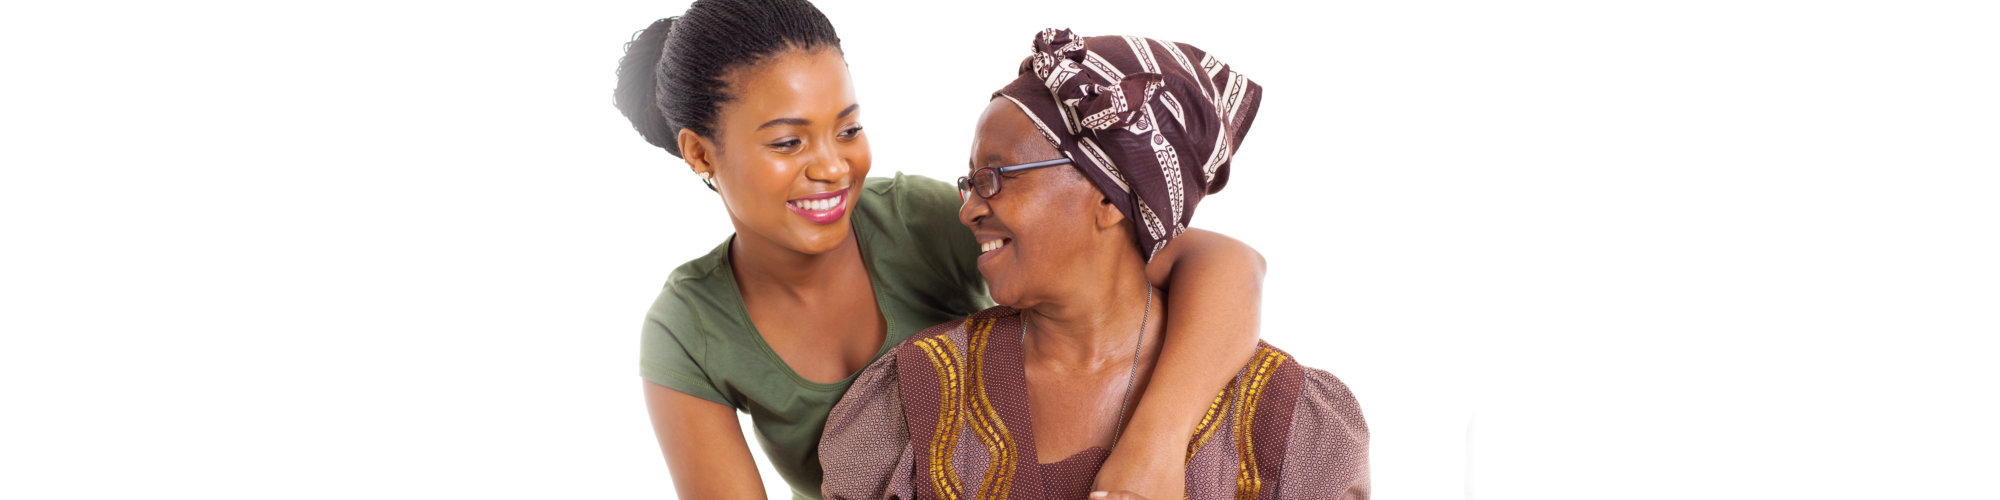 happy african senior mother and adult daughter closeup portrait on white